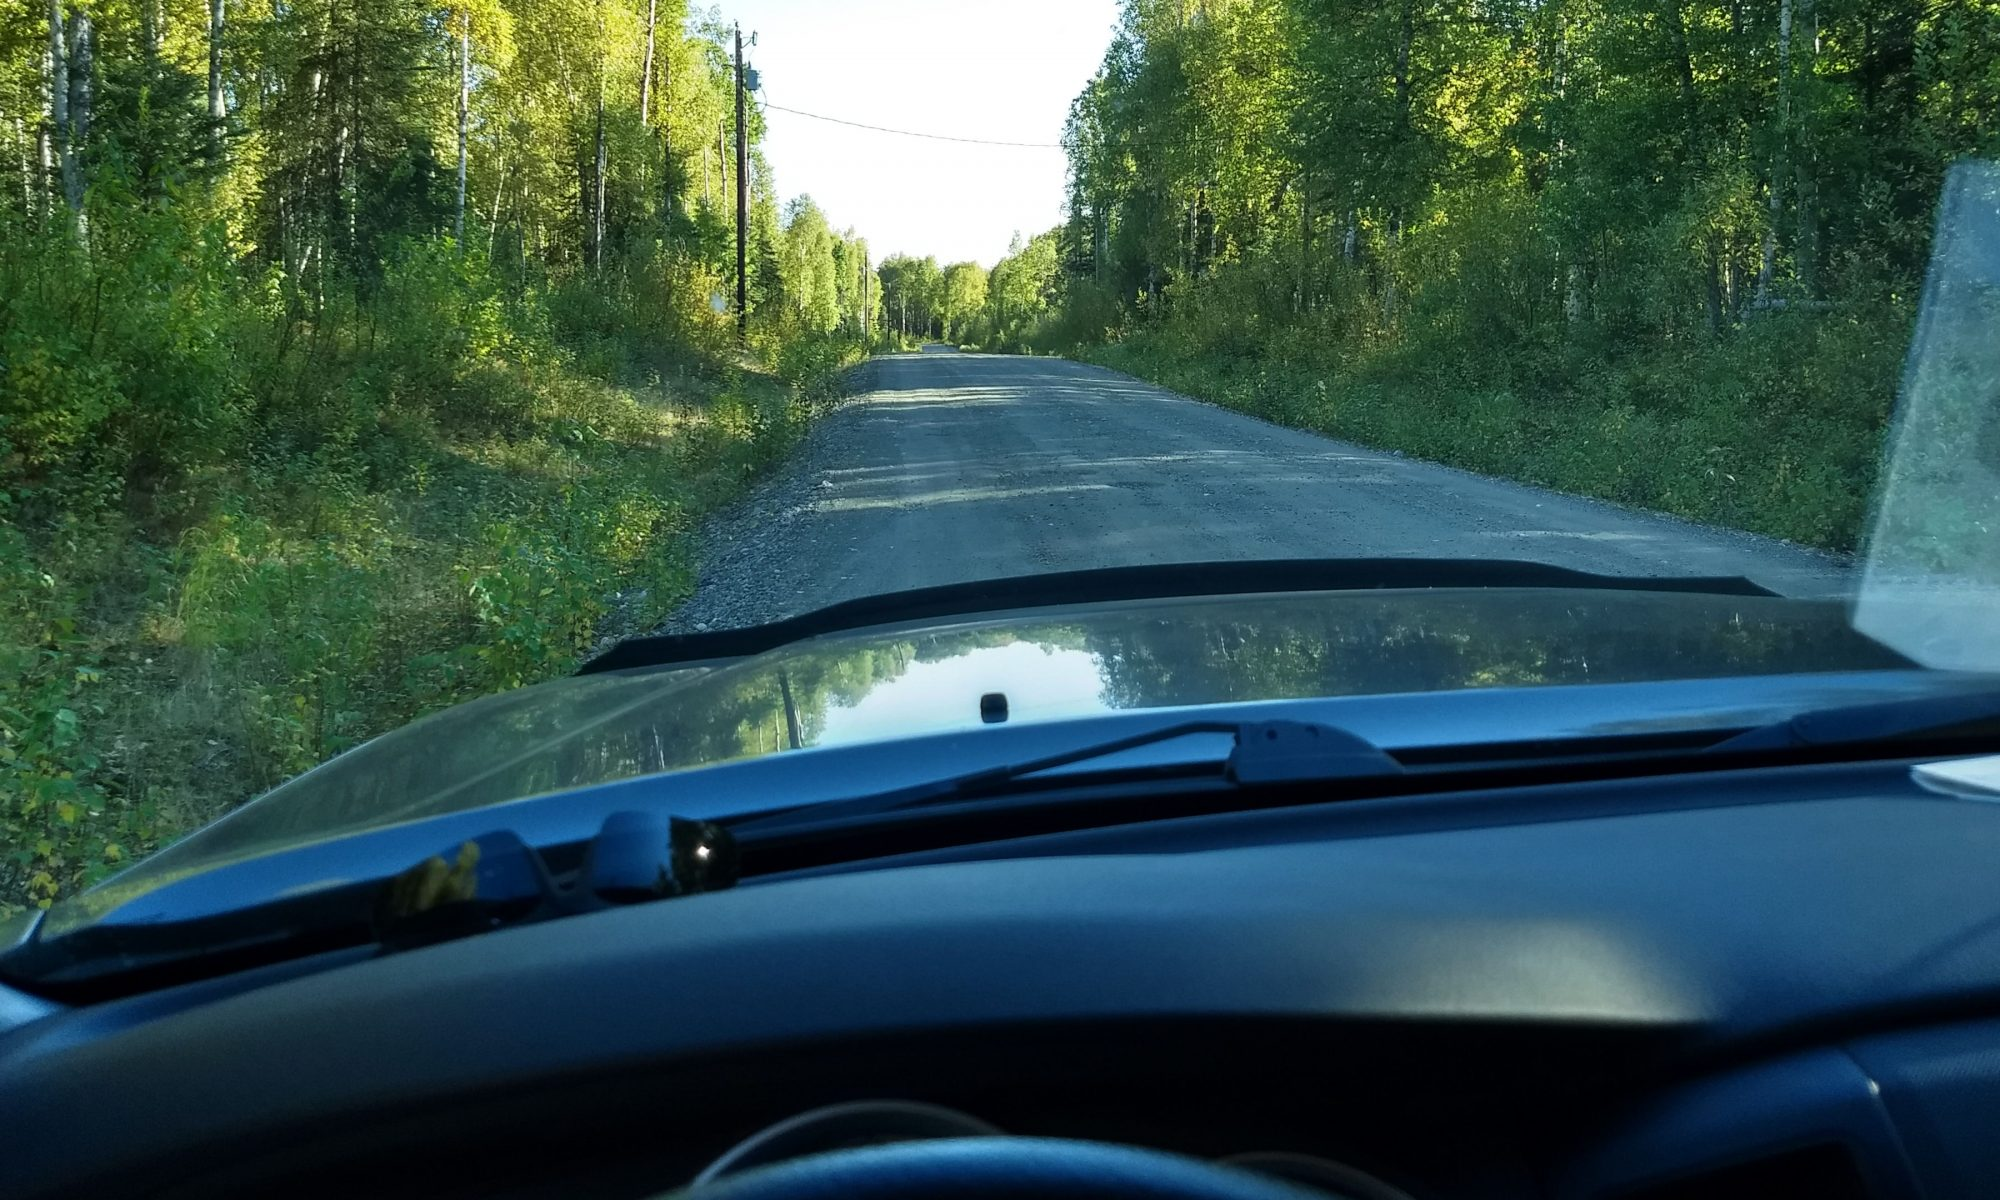 View through a vehicle dash looking at a forest in Alaska